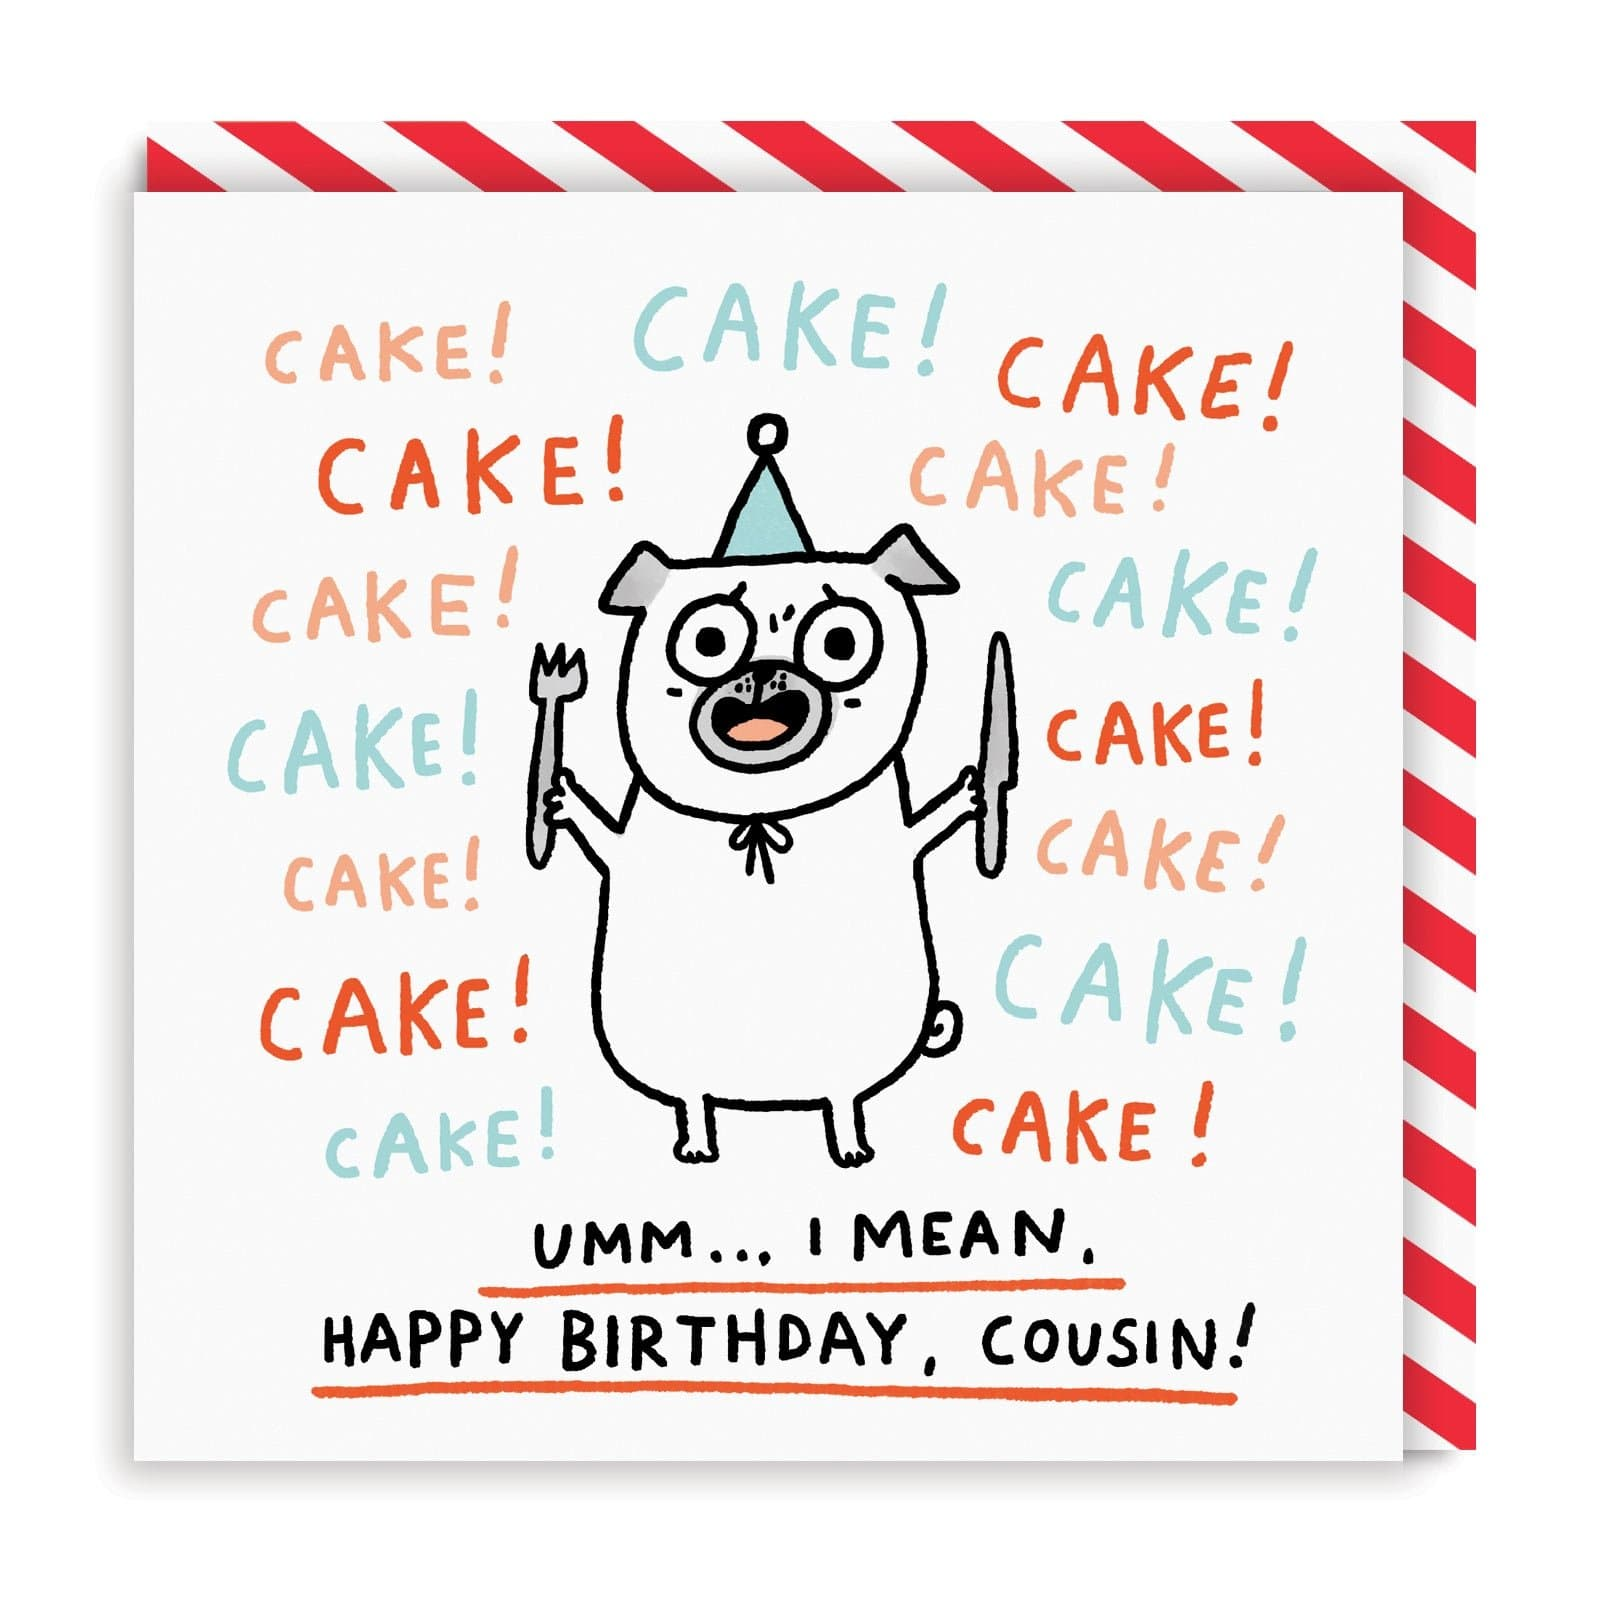 Cake Cousin Square Greeting Card